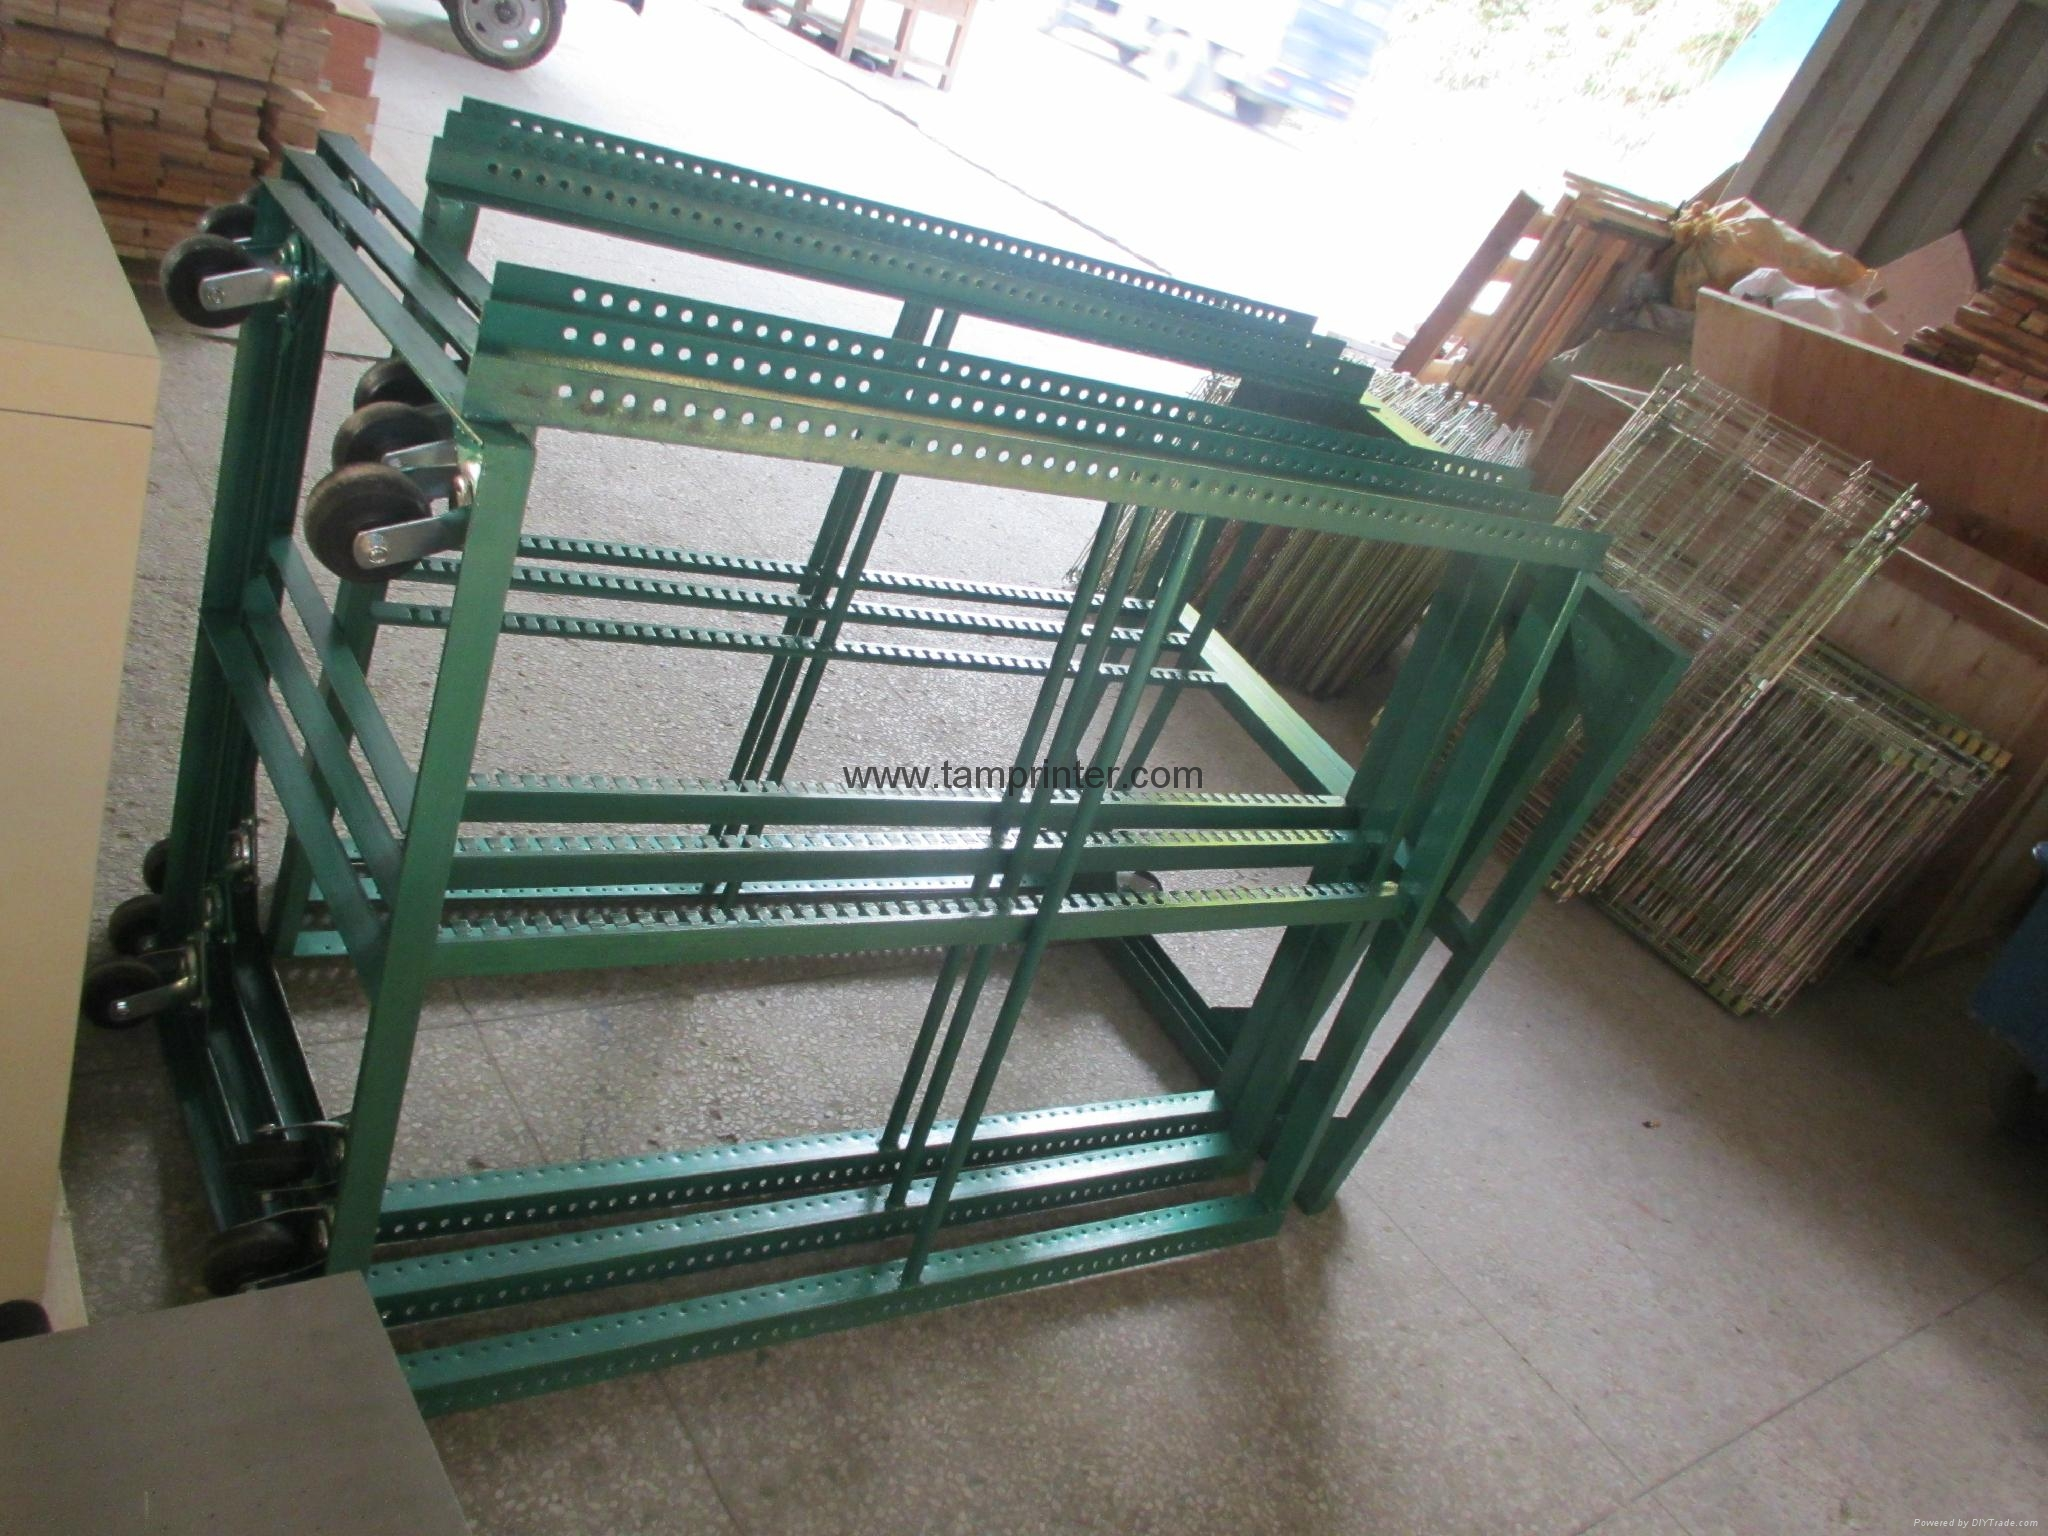 TM-50DG galvanized 50 Layers Screen Printing Drying Racks 14